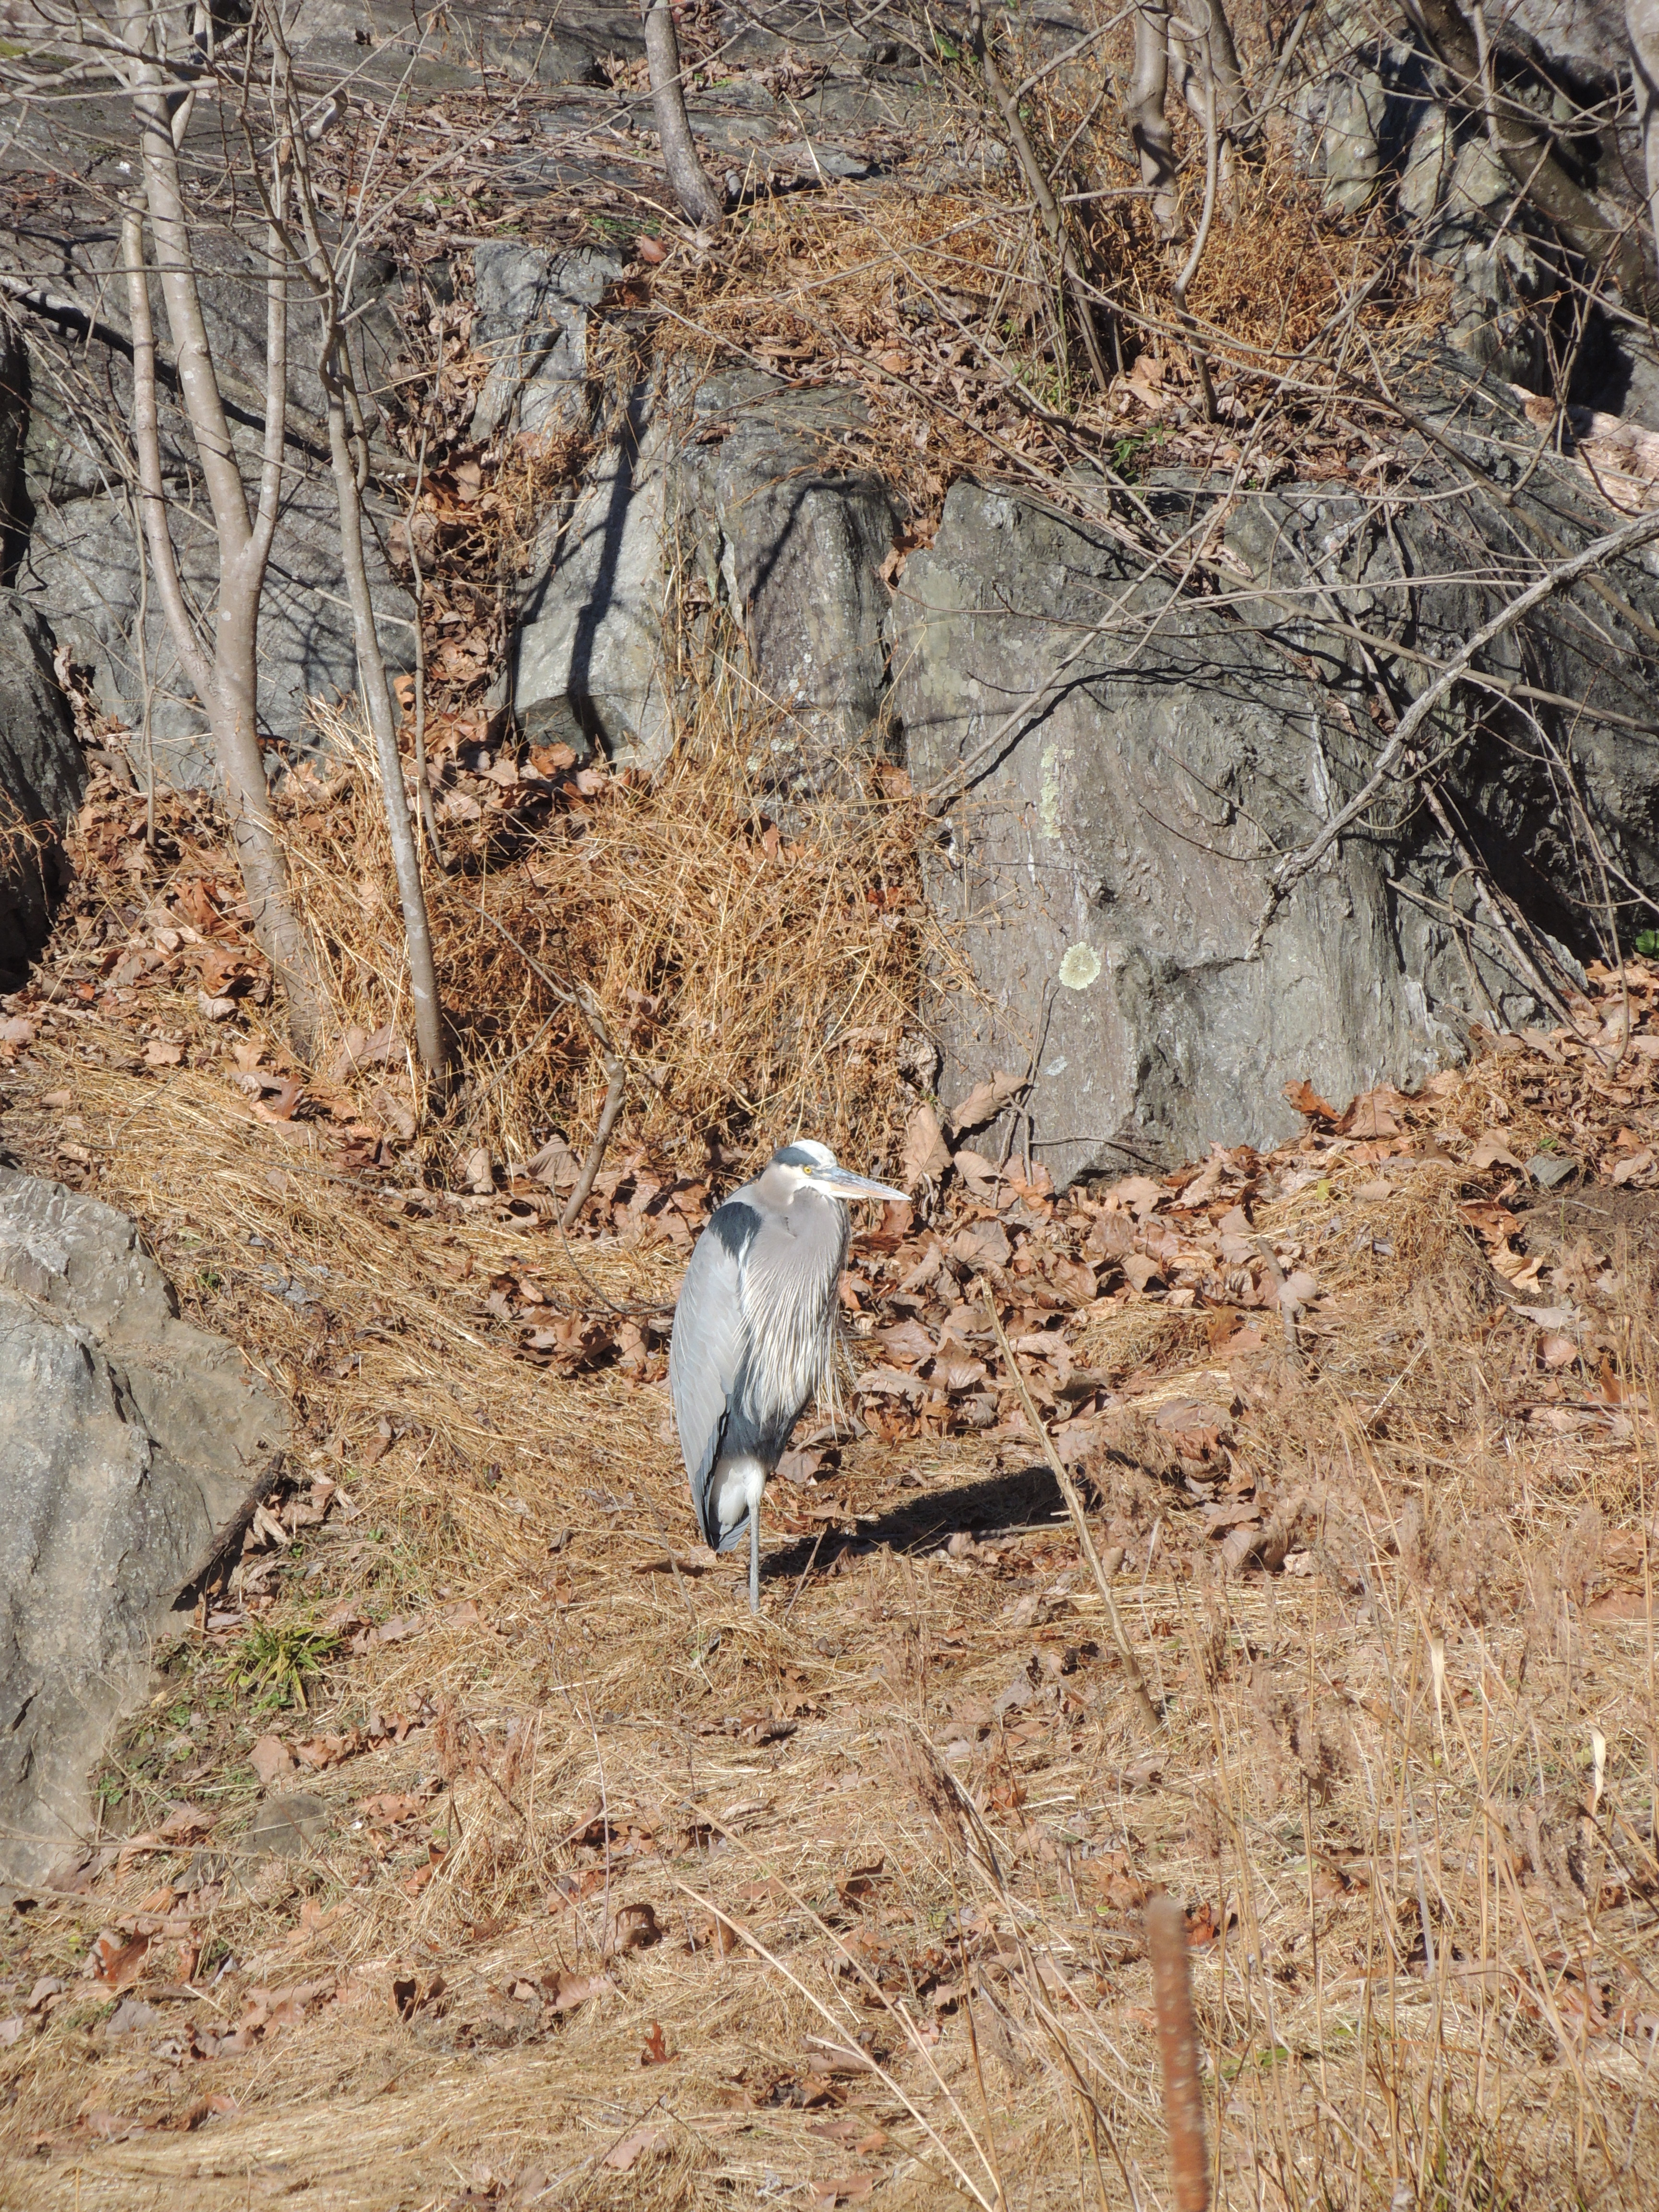 Great blue heron standing on one leg, with surrounding rocks of the same color.